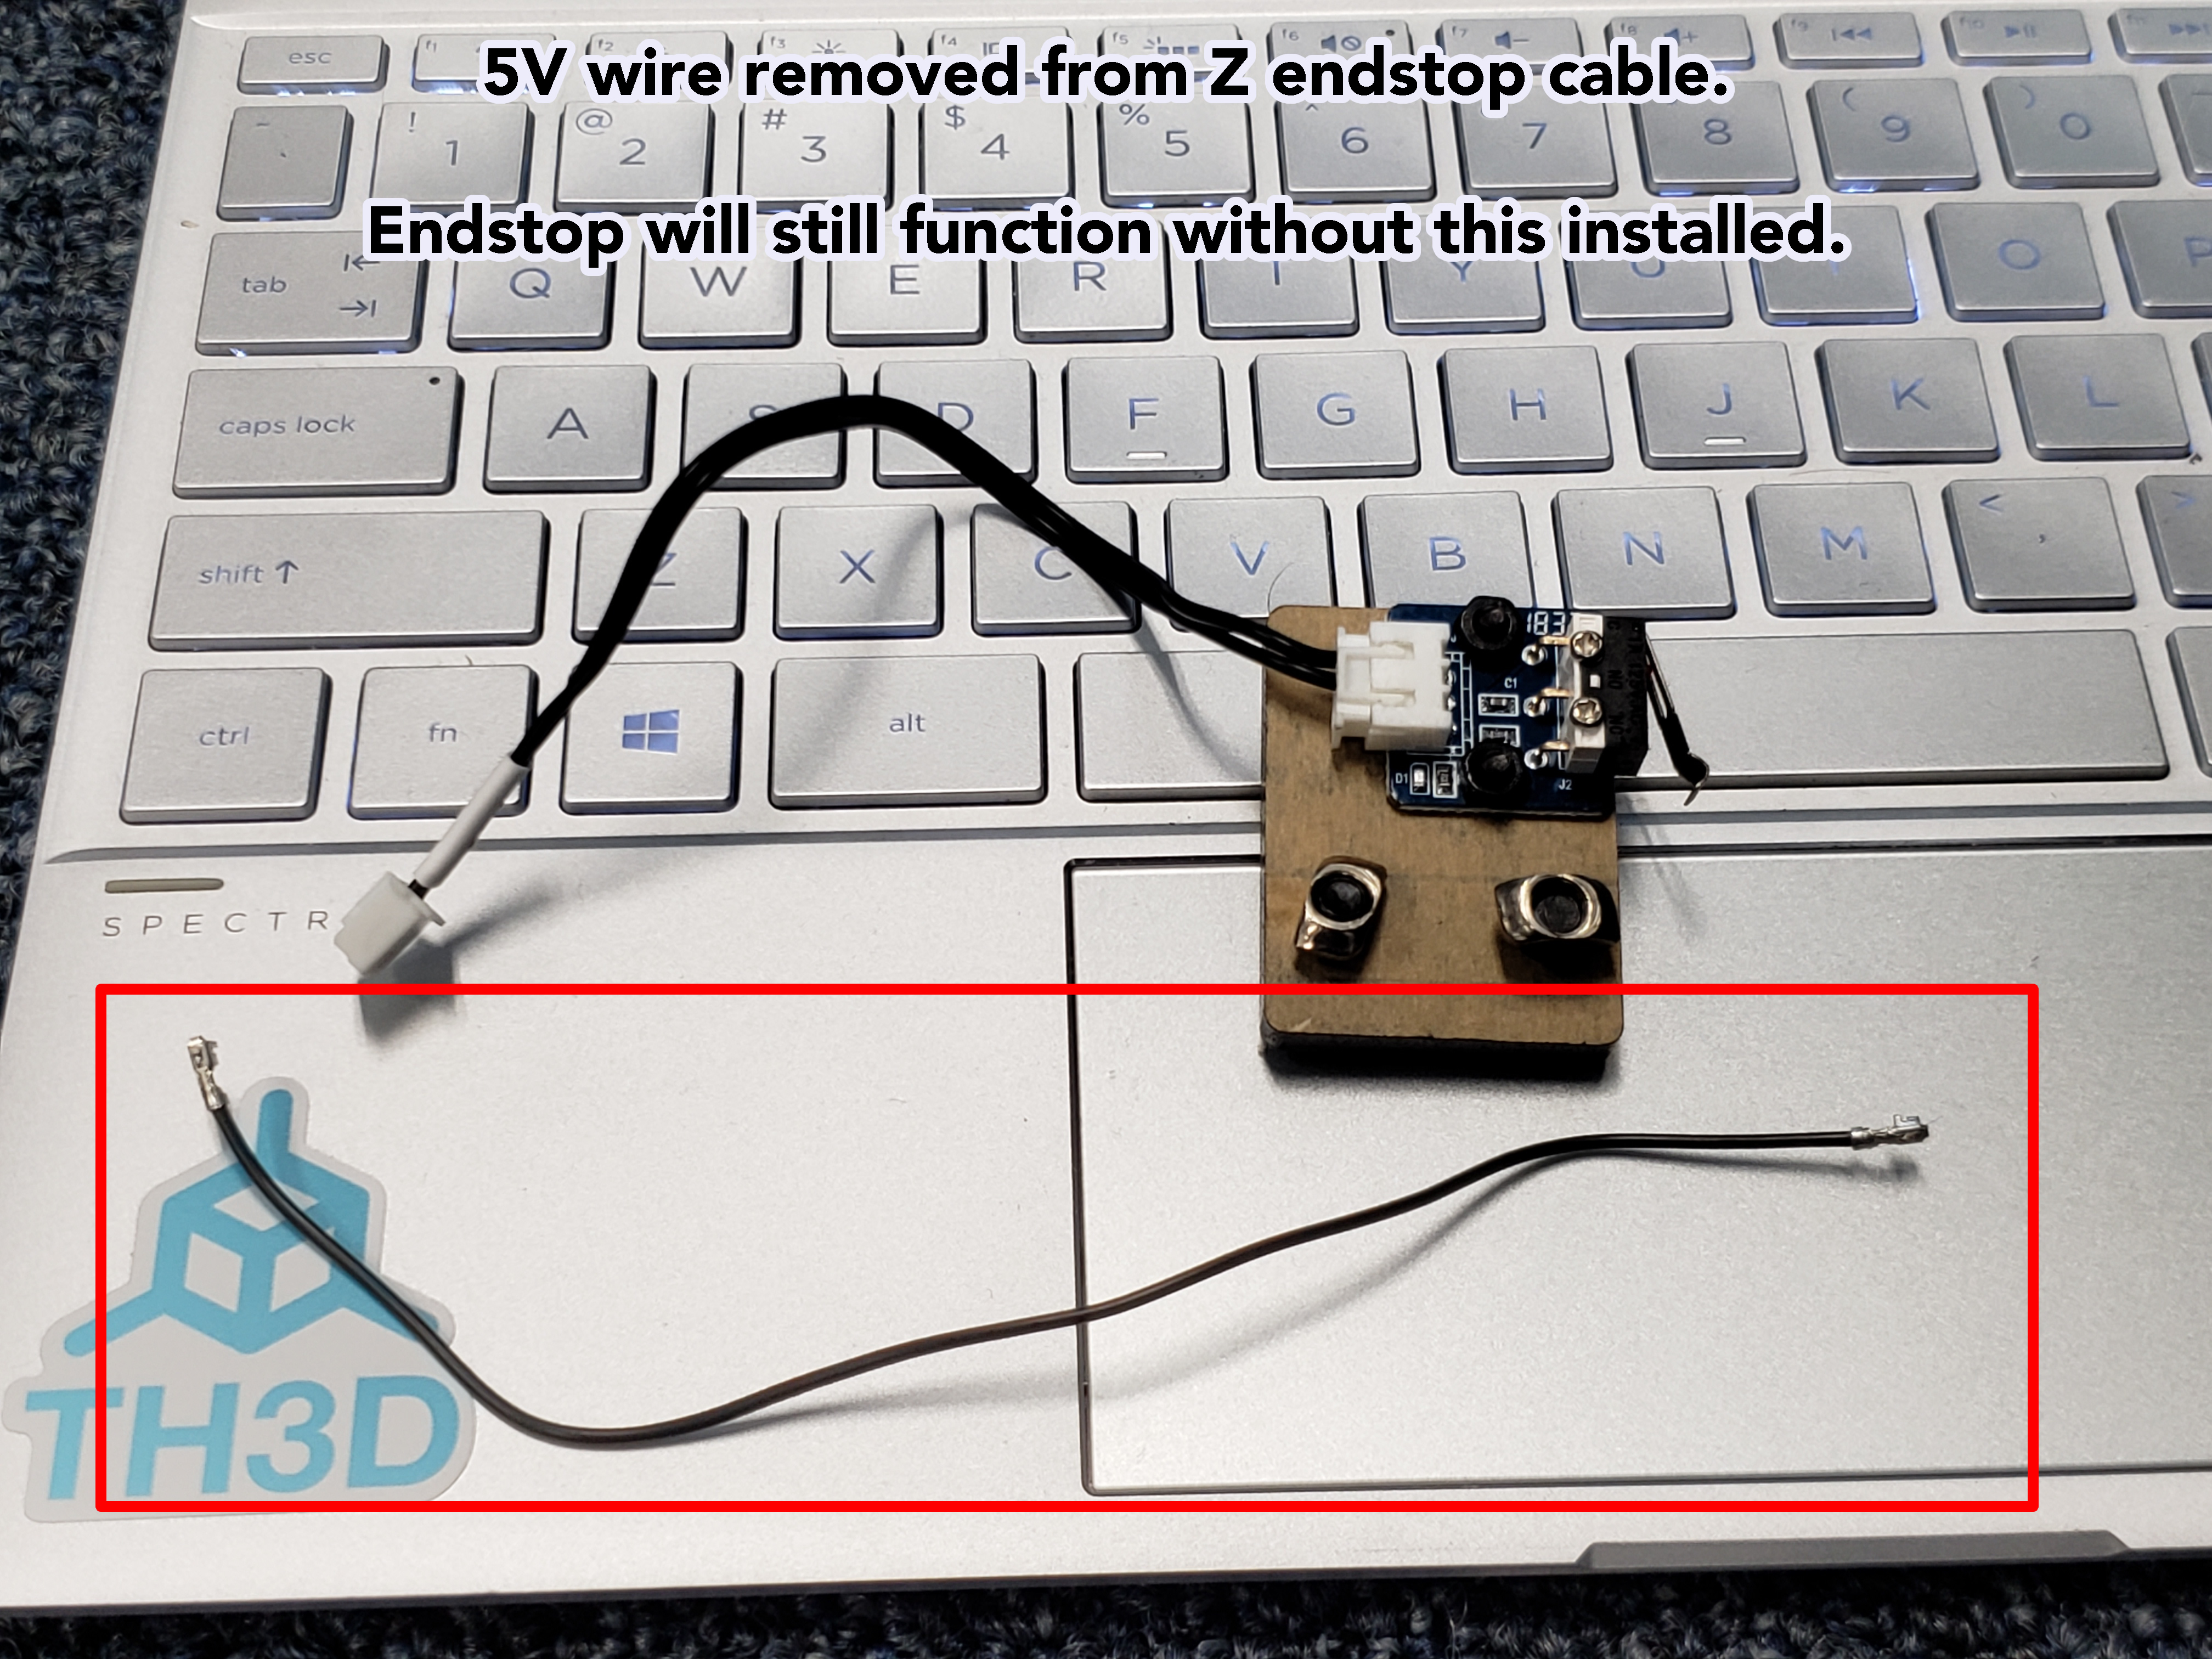 Geeetech A10, A10M, A20, A20M Z Endstop Wiring for EZABL - TH3D